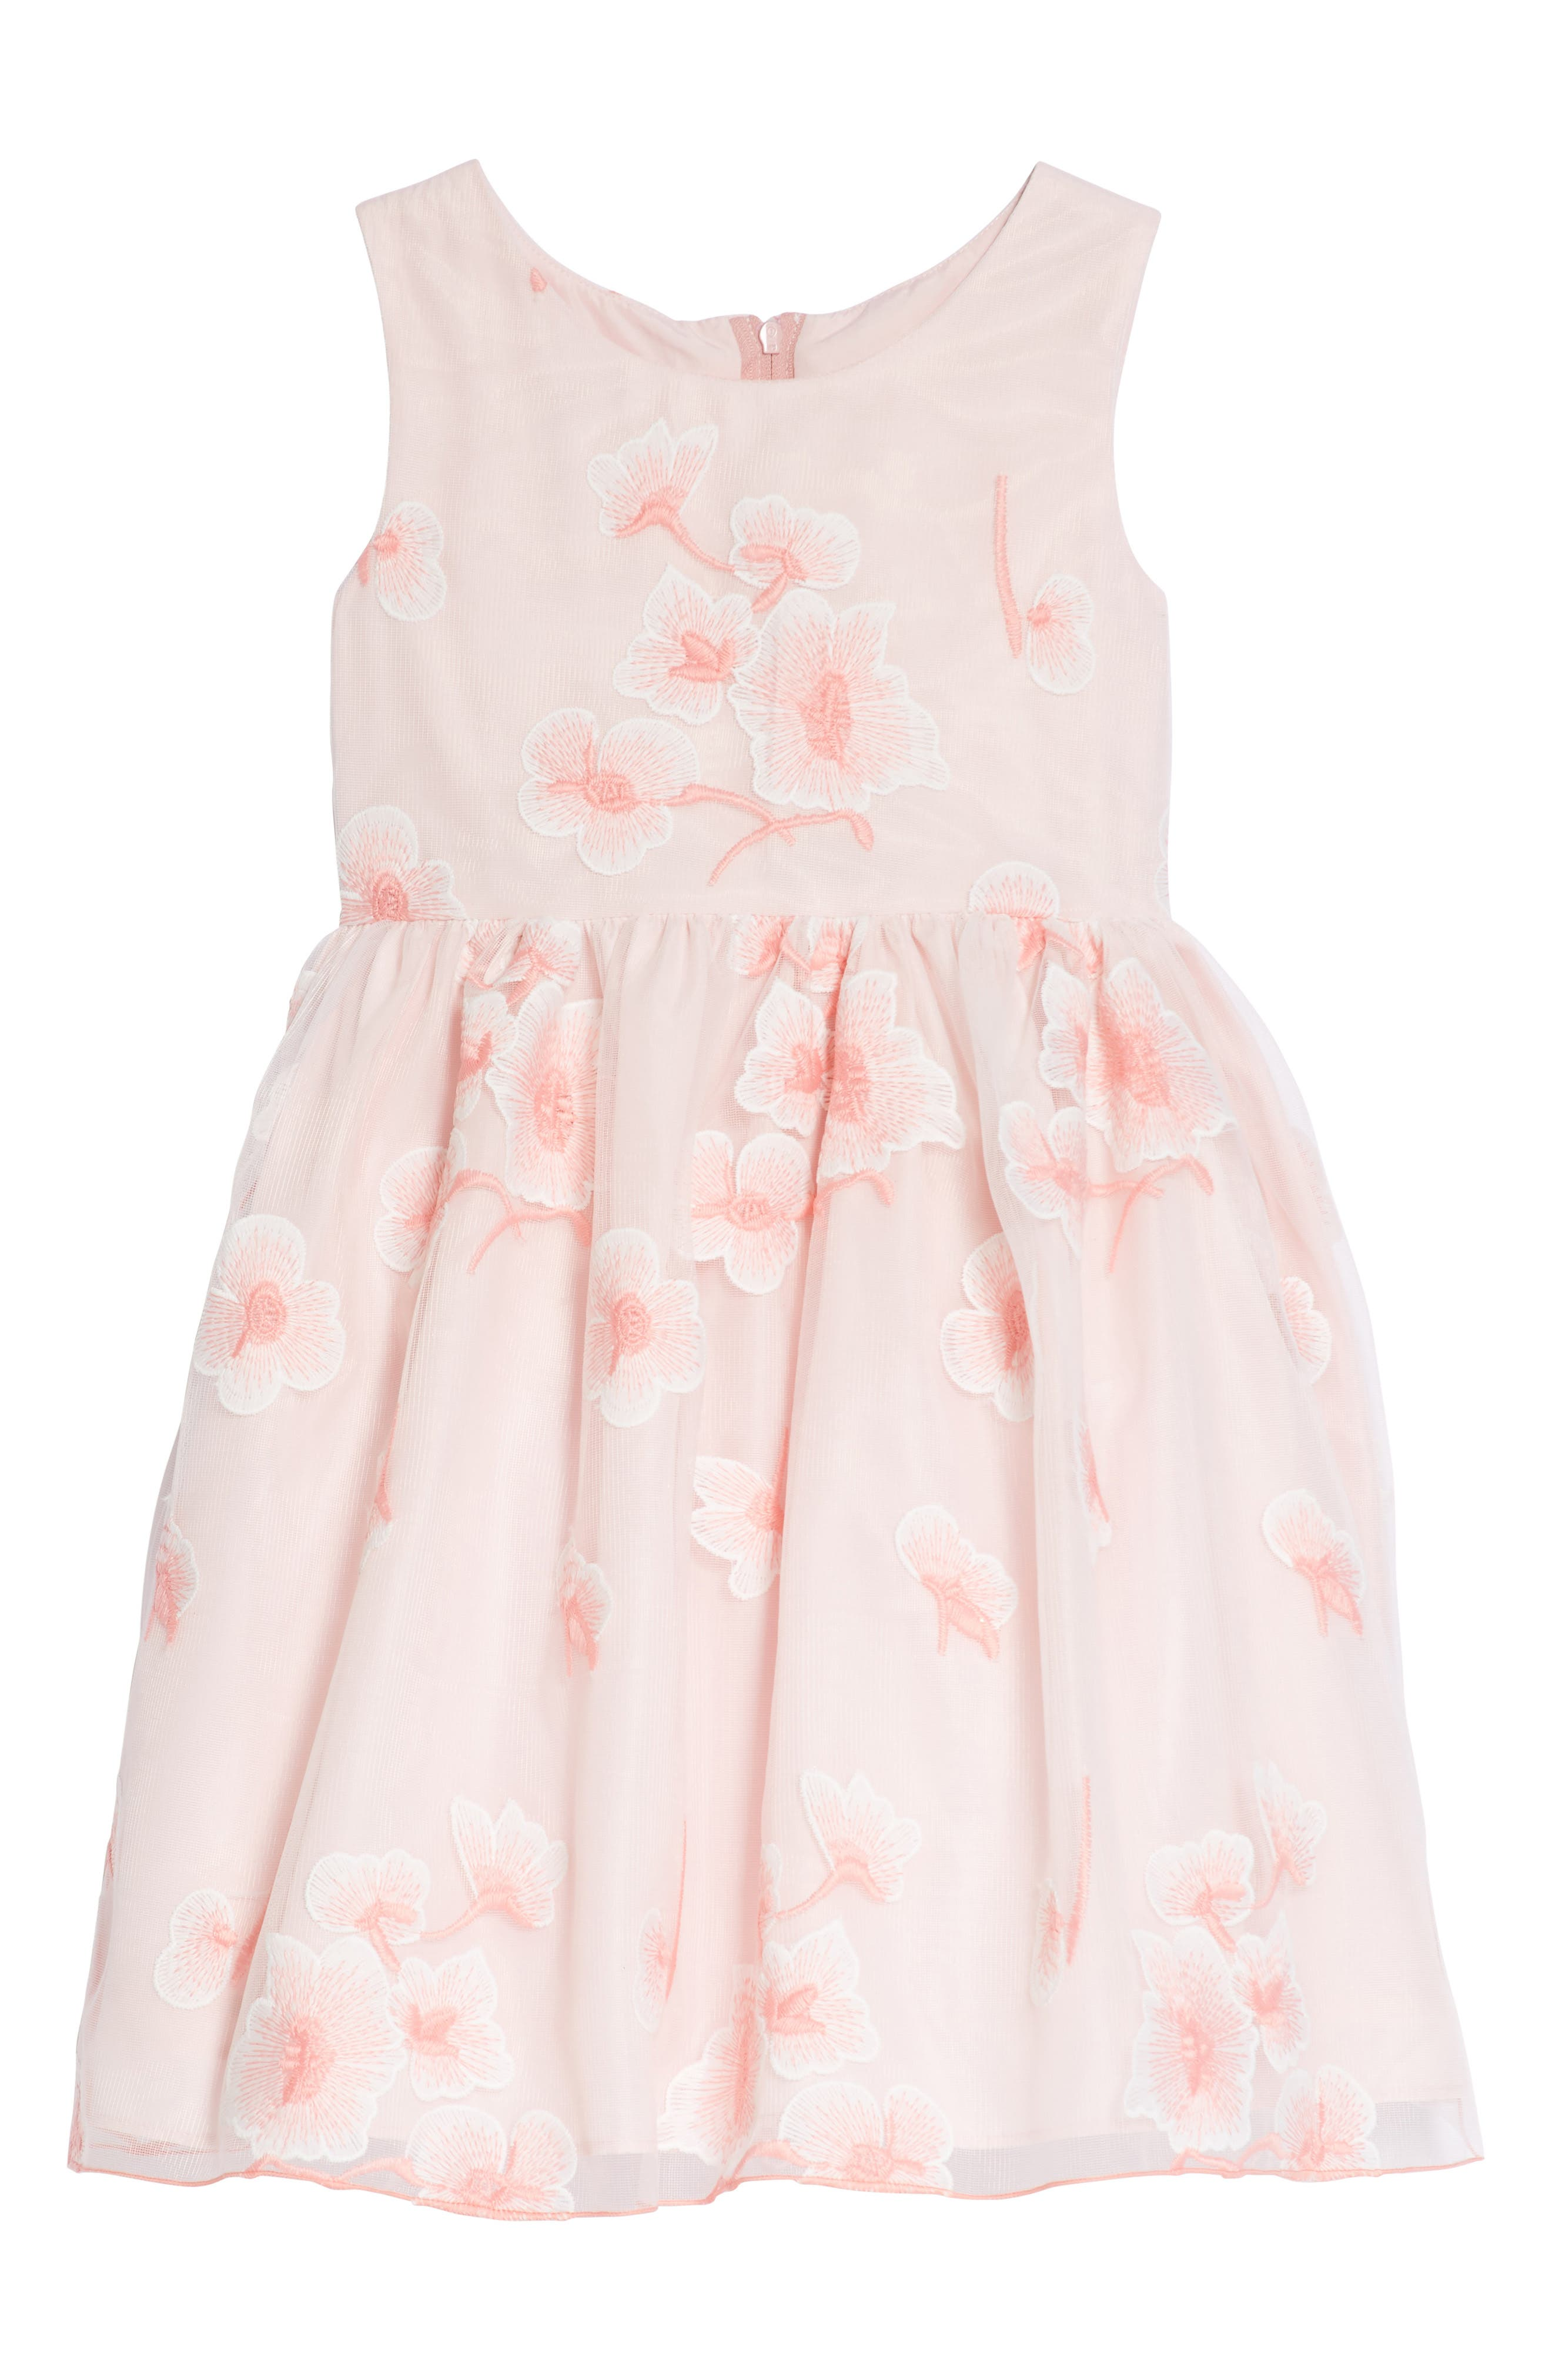 Floral Embroidered Dress,                         Main,                         color, 690